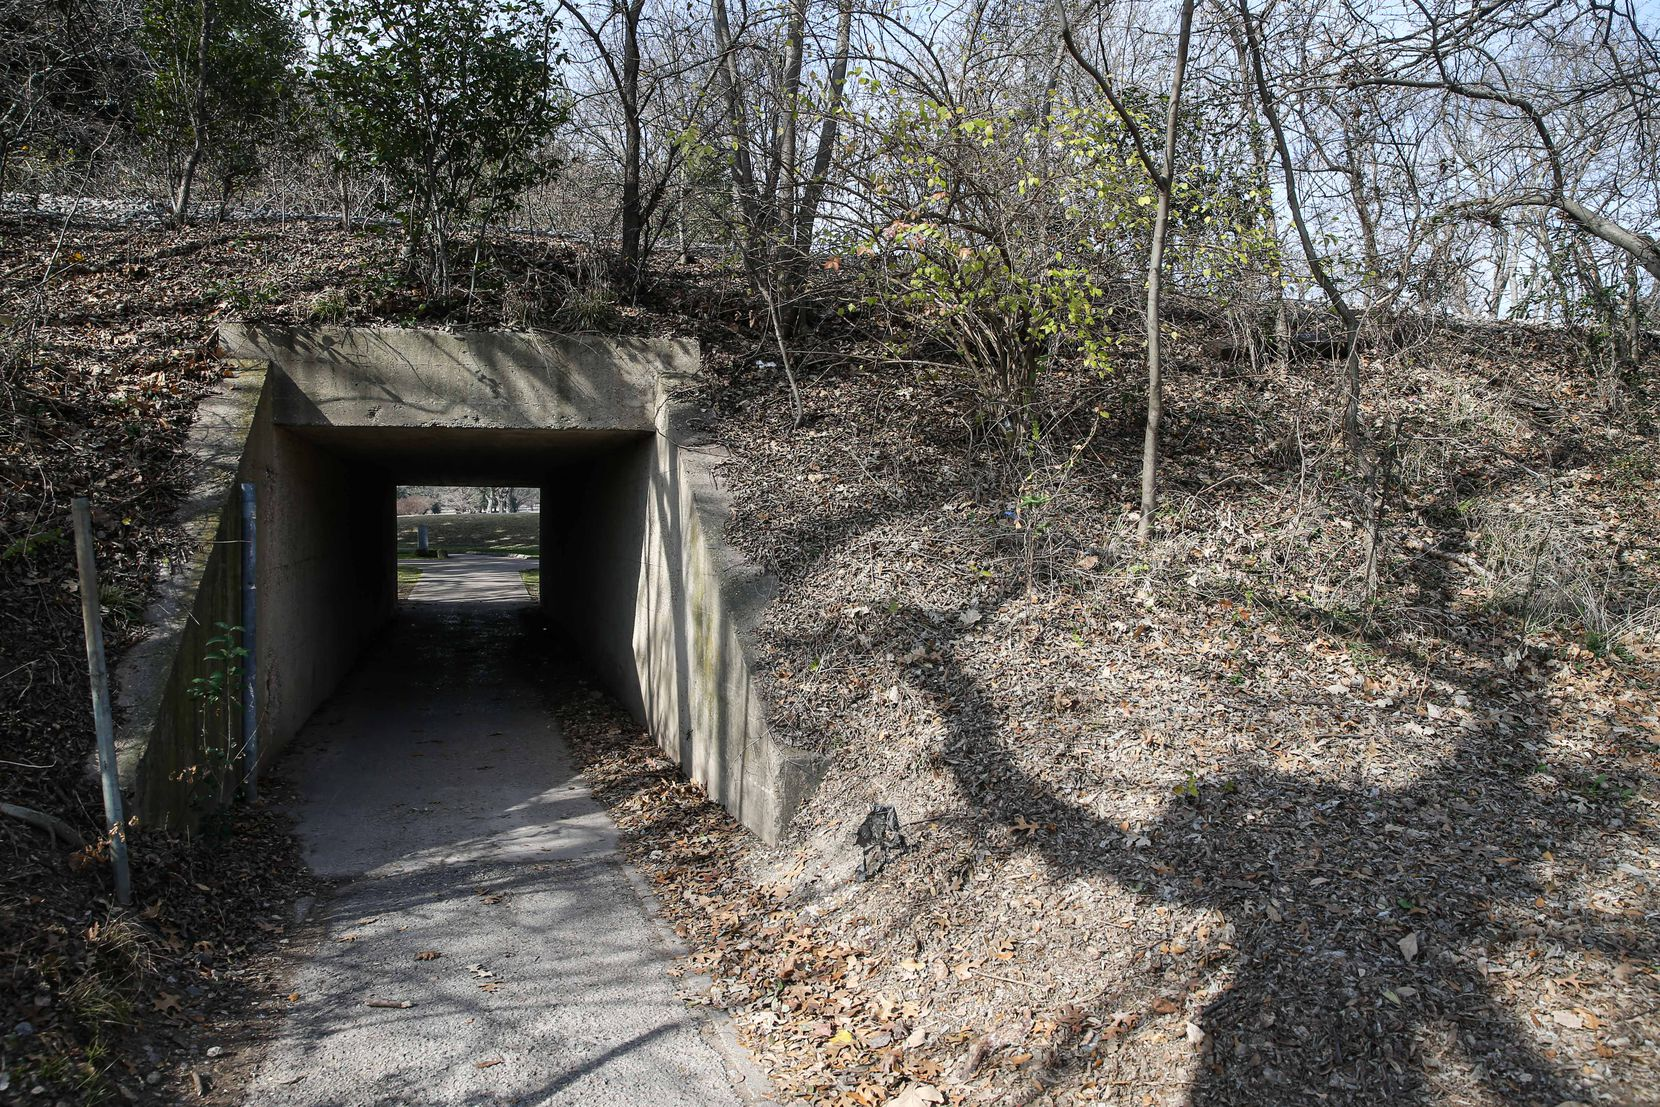 One of the two tunnels that currently provide golfers access to Samuell Grand Park's easternmost property, where the majority of the Tenison Glen Golf Course sits. One of the tunnels will need to be dedicated to nature preserve users and may require additional renovations.